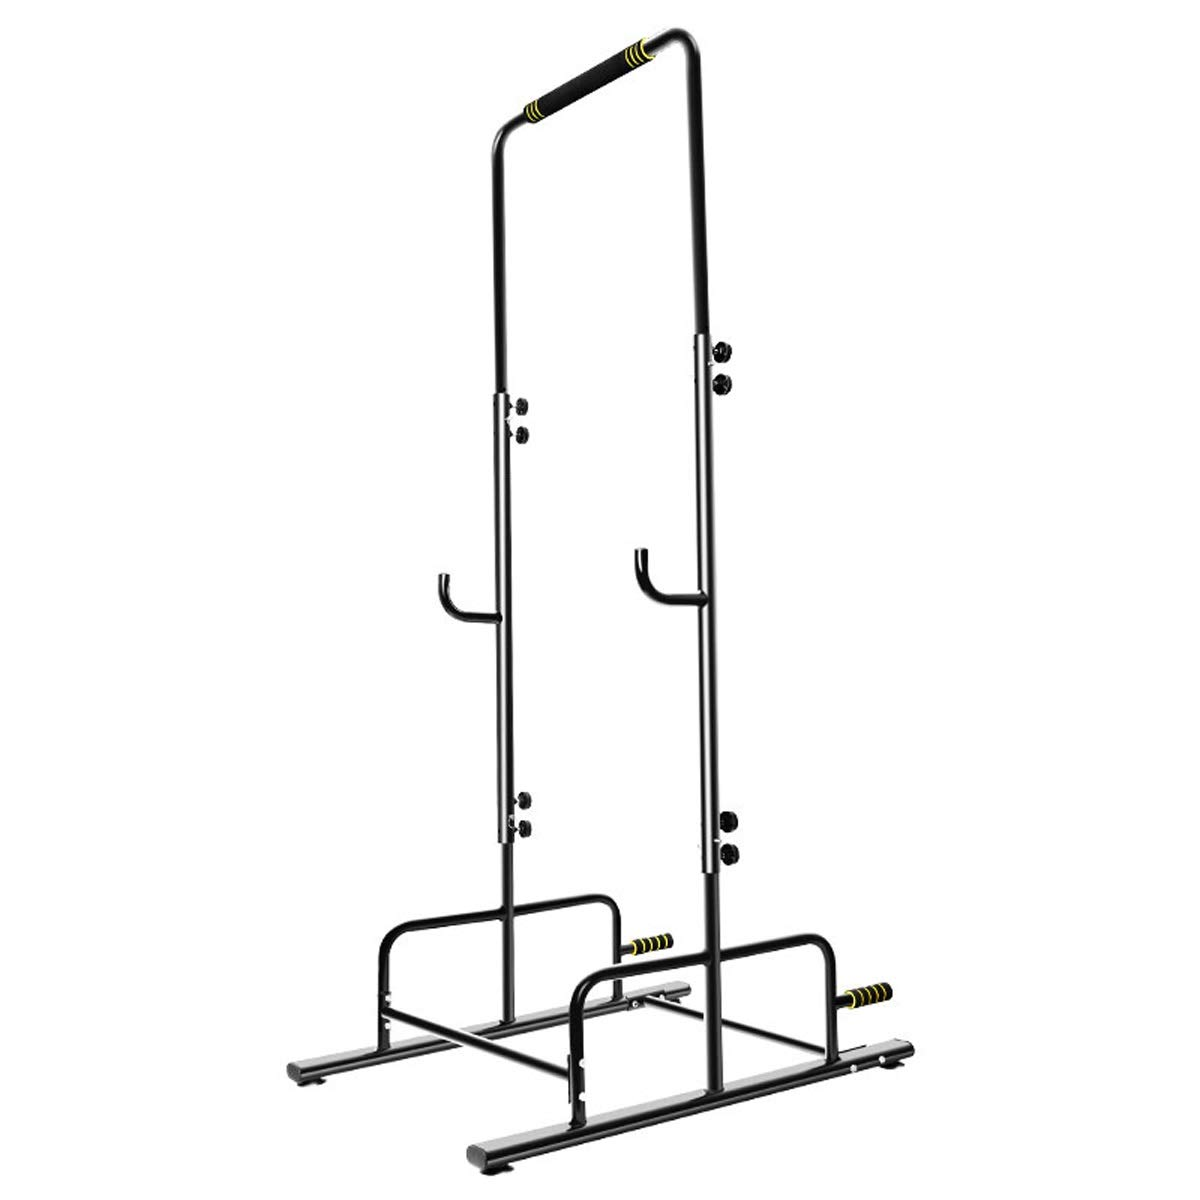 Household Multi-Function Horizontal Bar Indoor Pull-up Device Single Parallel Bar Frame Sporting Goods Children's Home Fitness Equipment by Baianju